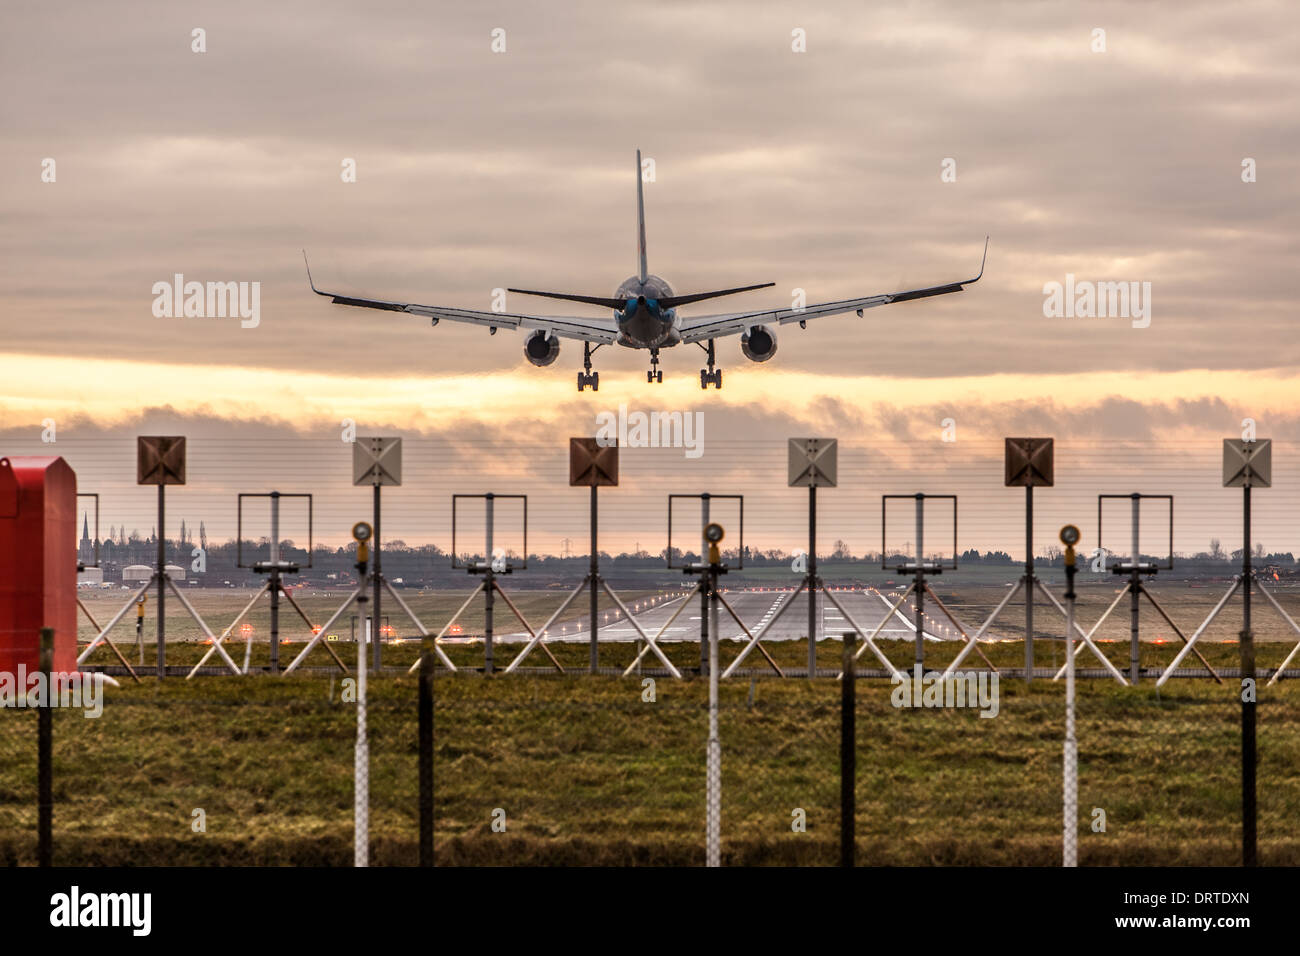 Thomson Boeing 767 Aircraft Landing at Birmingham Airport, West Midlands, England - Stock Image